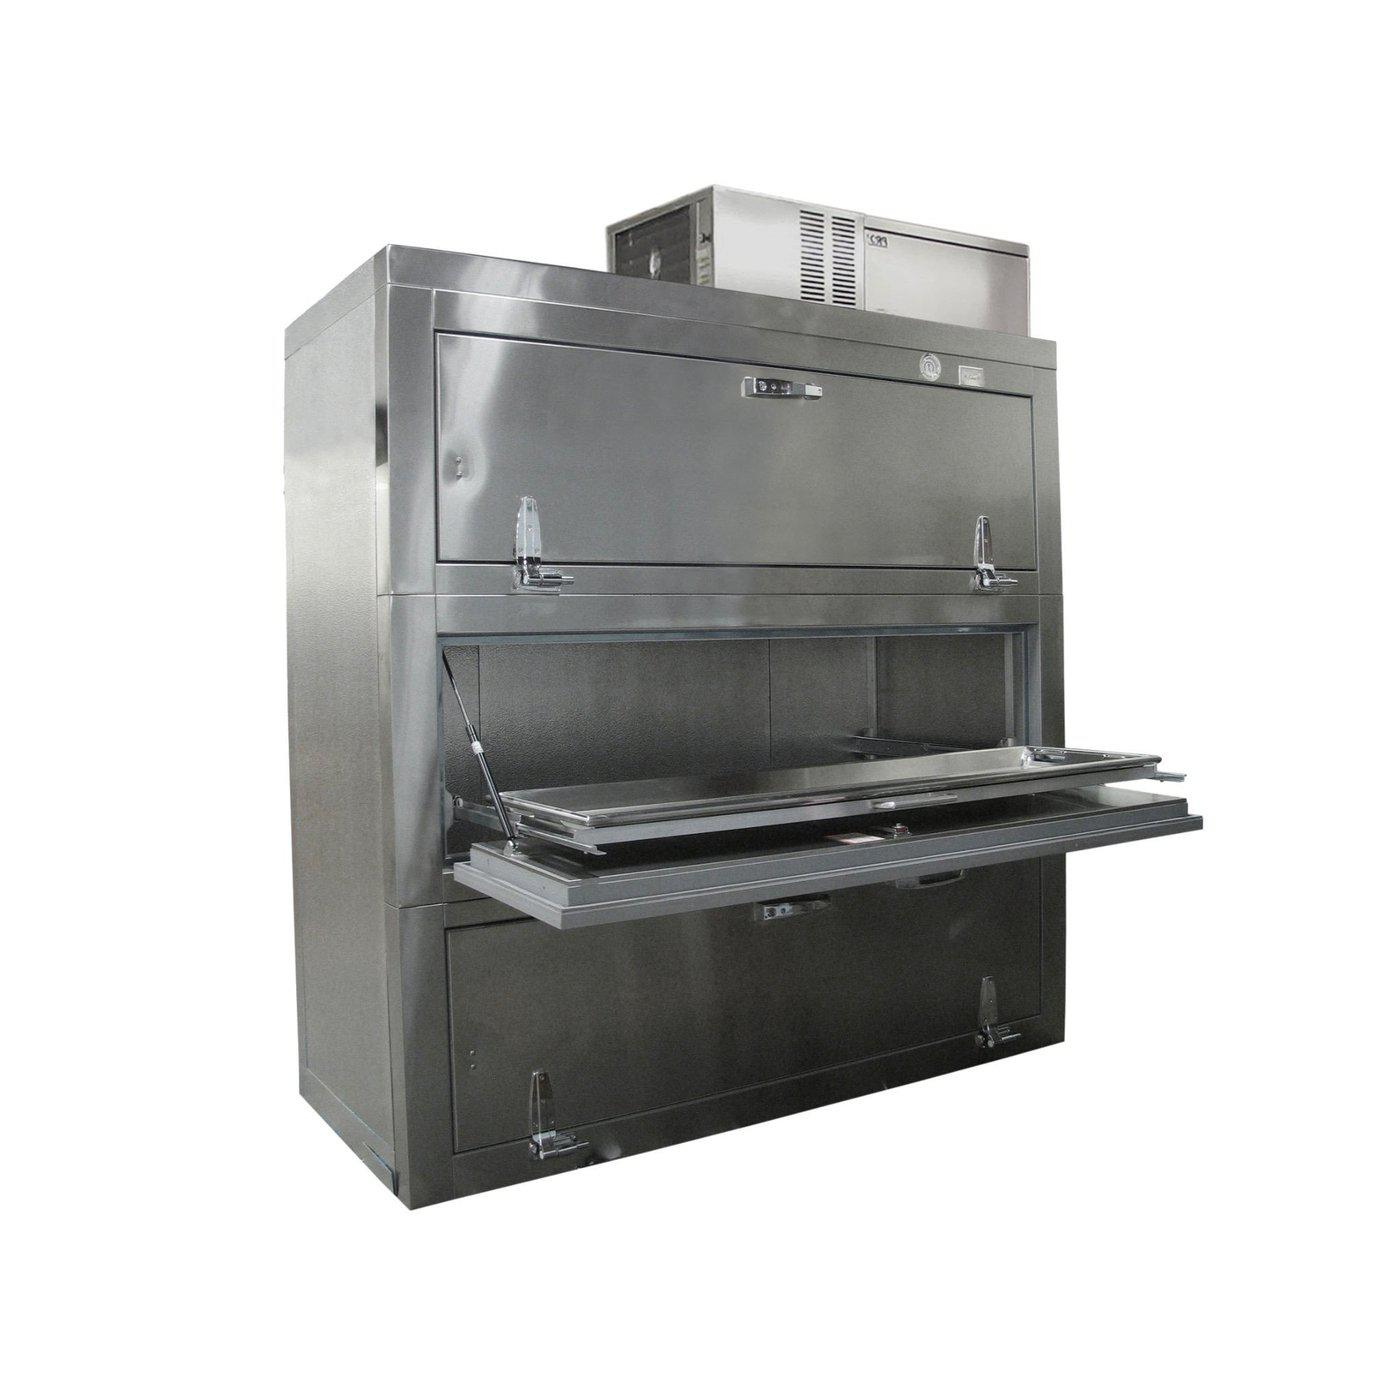 Three Body Side Acting Refrigerator-Refrigeration-Mortech Manufacturing Company Inc. Quality Stainless Steel Autopsy, Morgue, Funeral Home, Necropsy, Veterinary / Anatomy, Dissection Equipment and Accessories